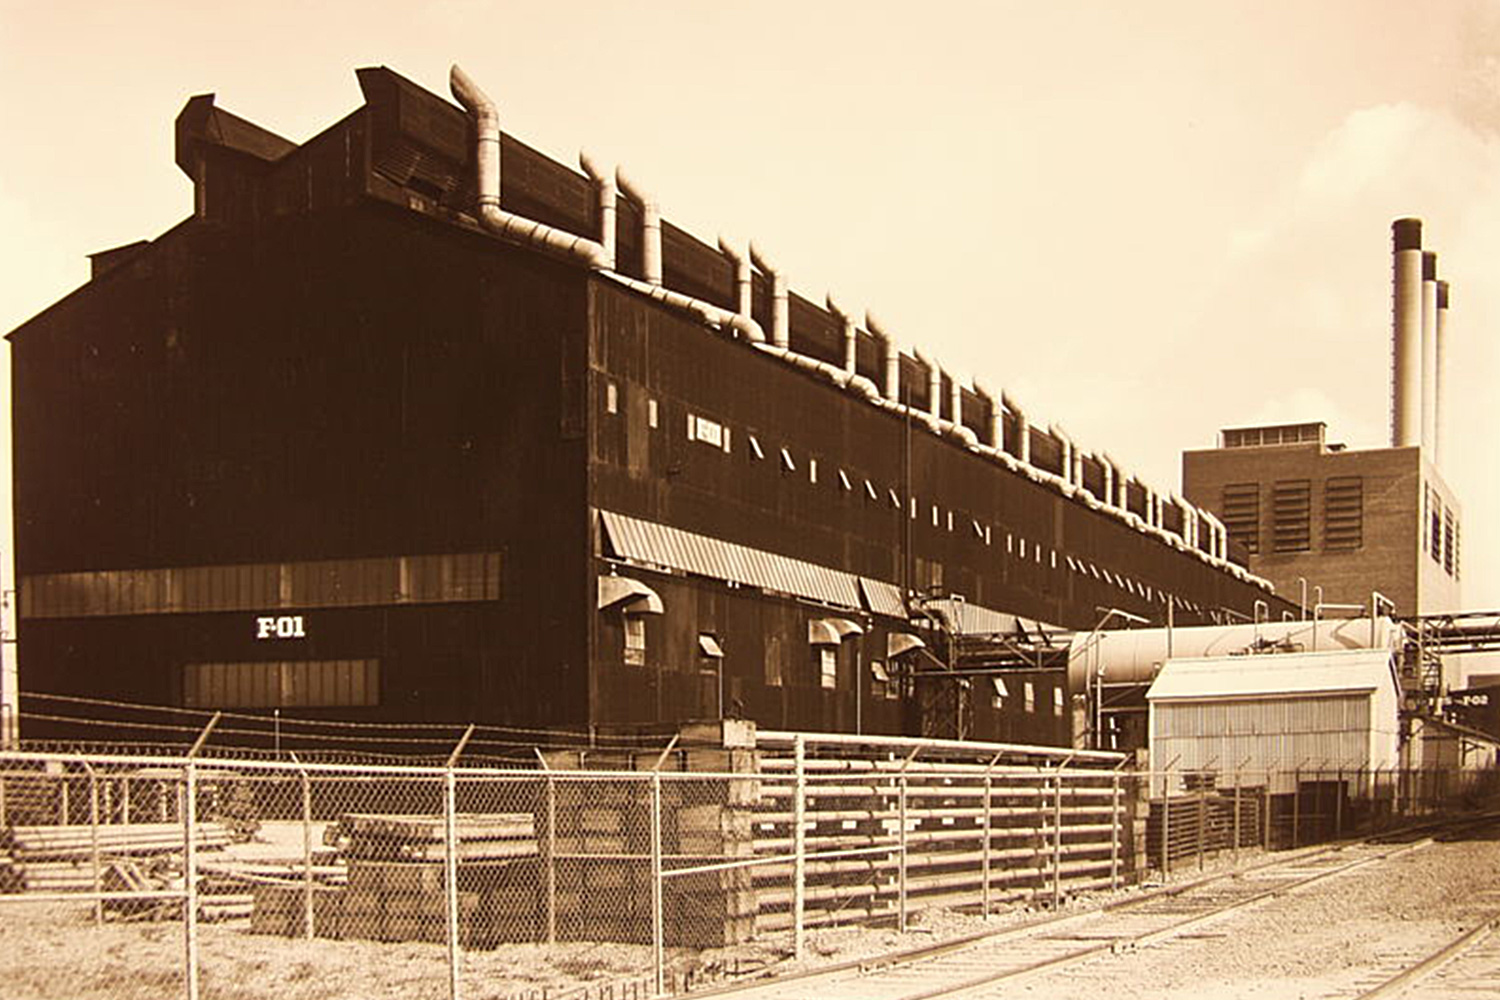 F-01 Building of the S-50 project that housed the uranium enrichment process equipment